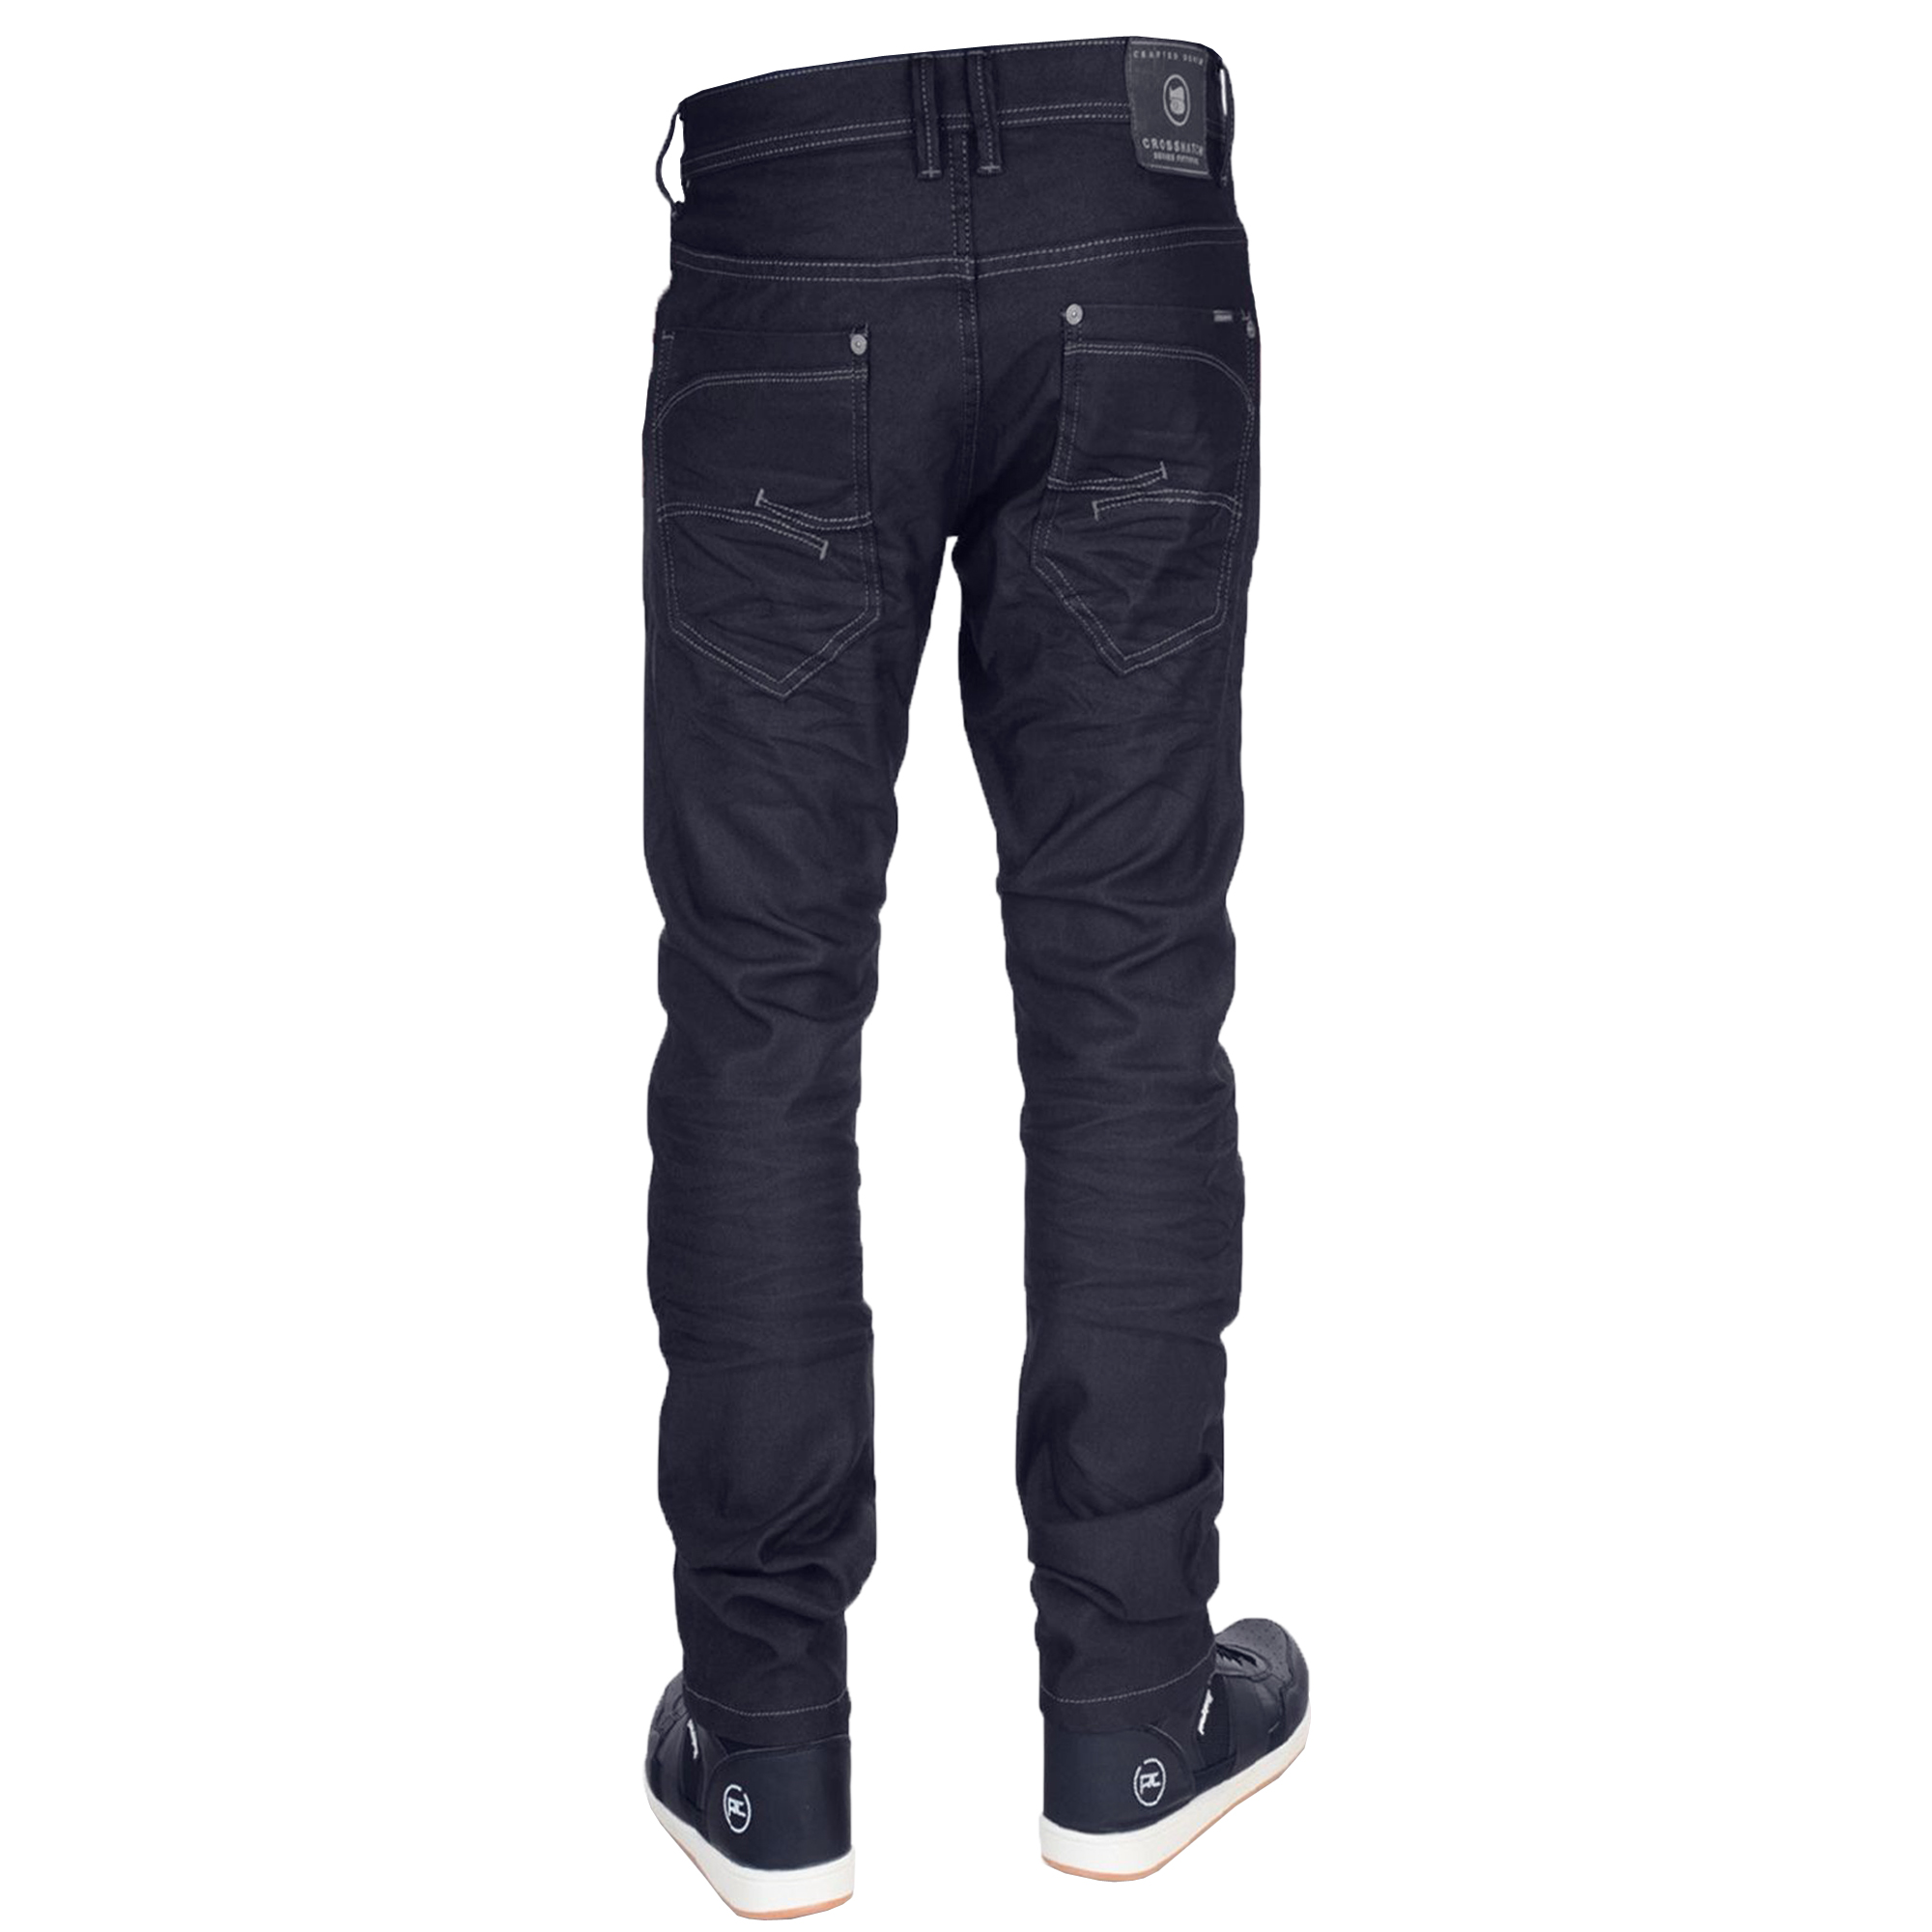 Mens-Crafted-Denim-Jeans-Crosshatch-Slim-Fit-Trousers-Menzo-Stretch-Pants-New thumbnail 6